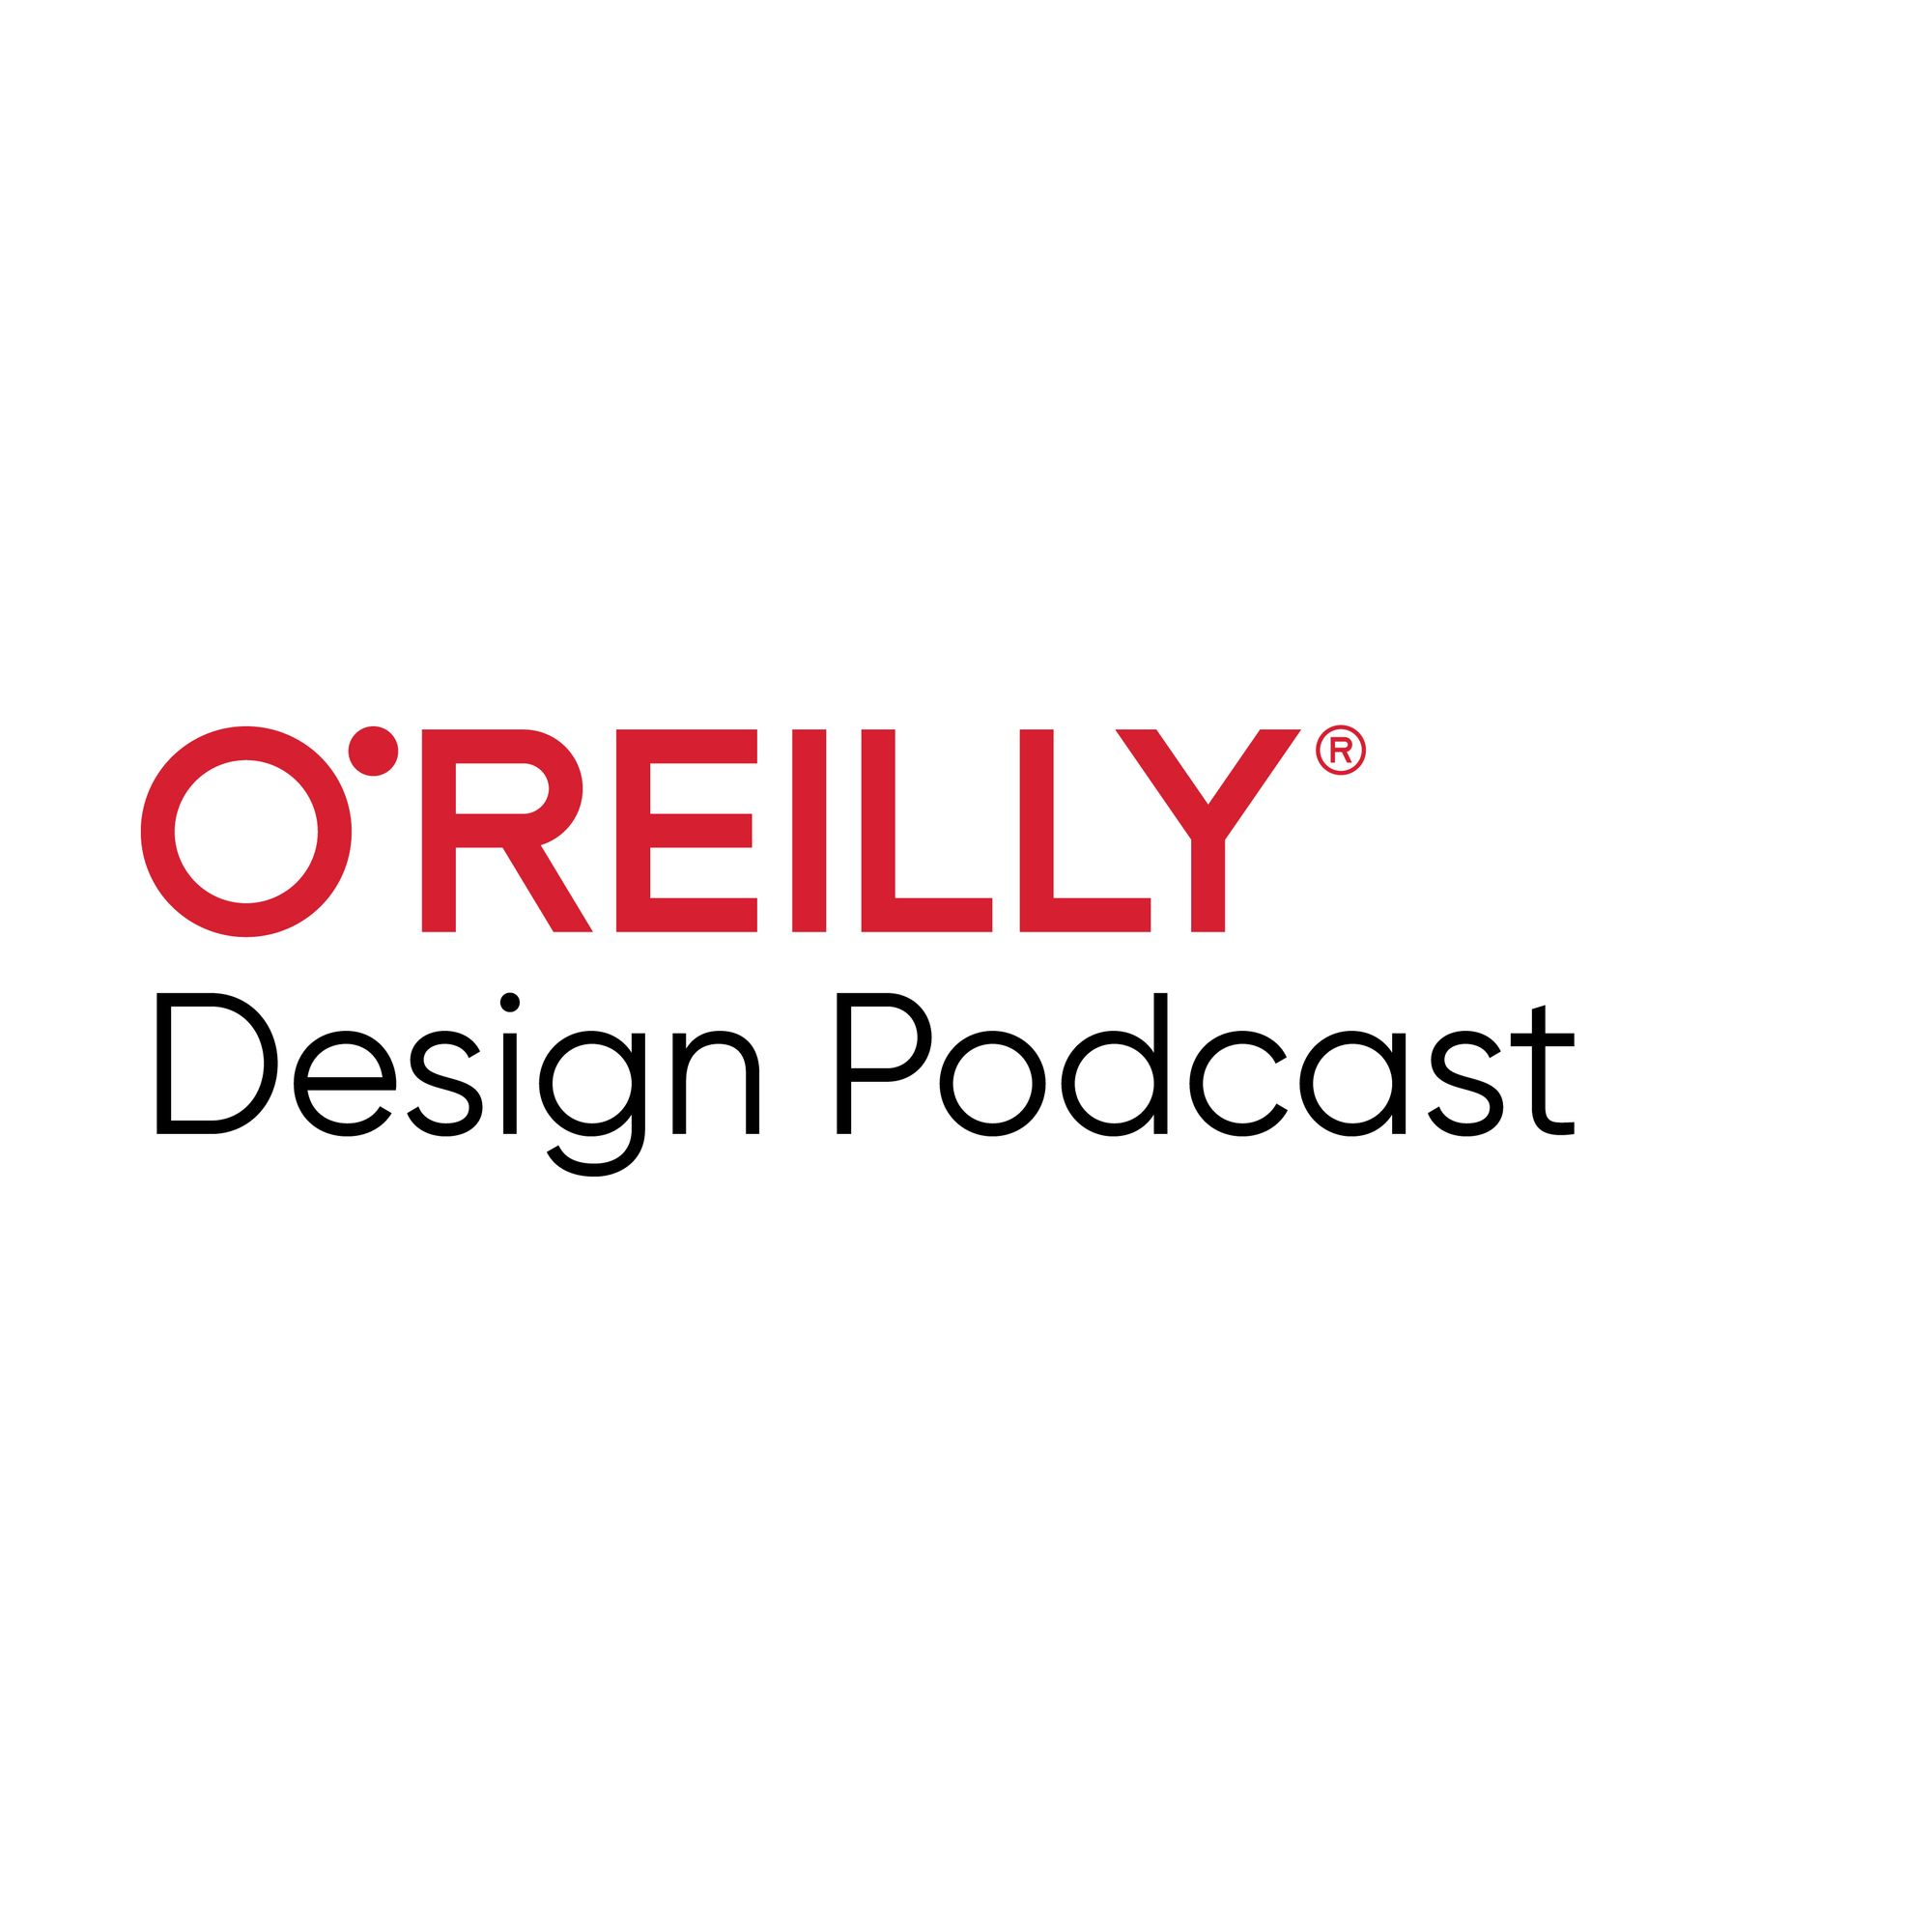 designer podcast 9